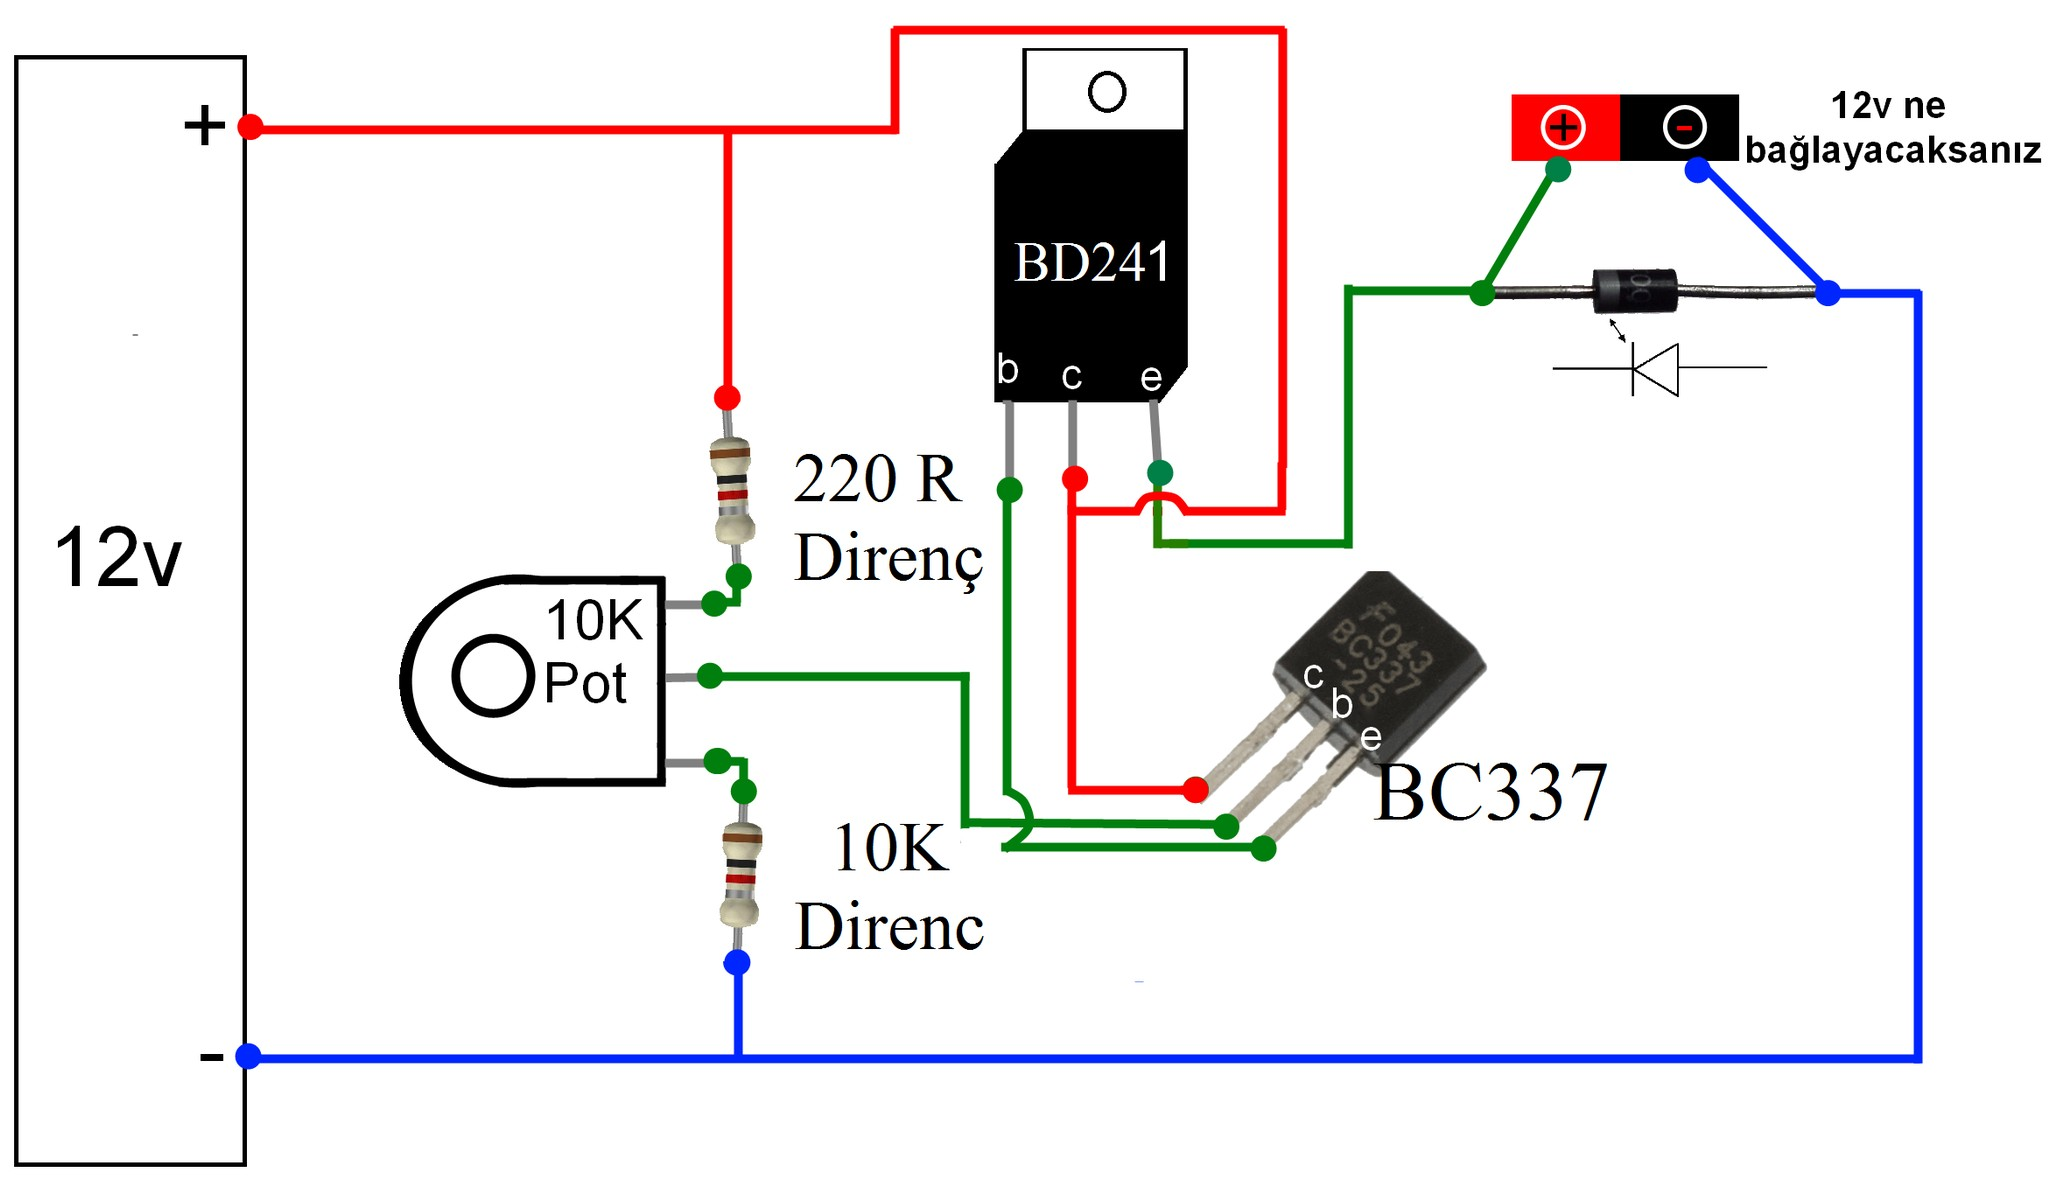 Precision Potentiometer is essentially a voltage divider used for measuring electric potential